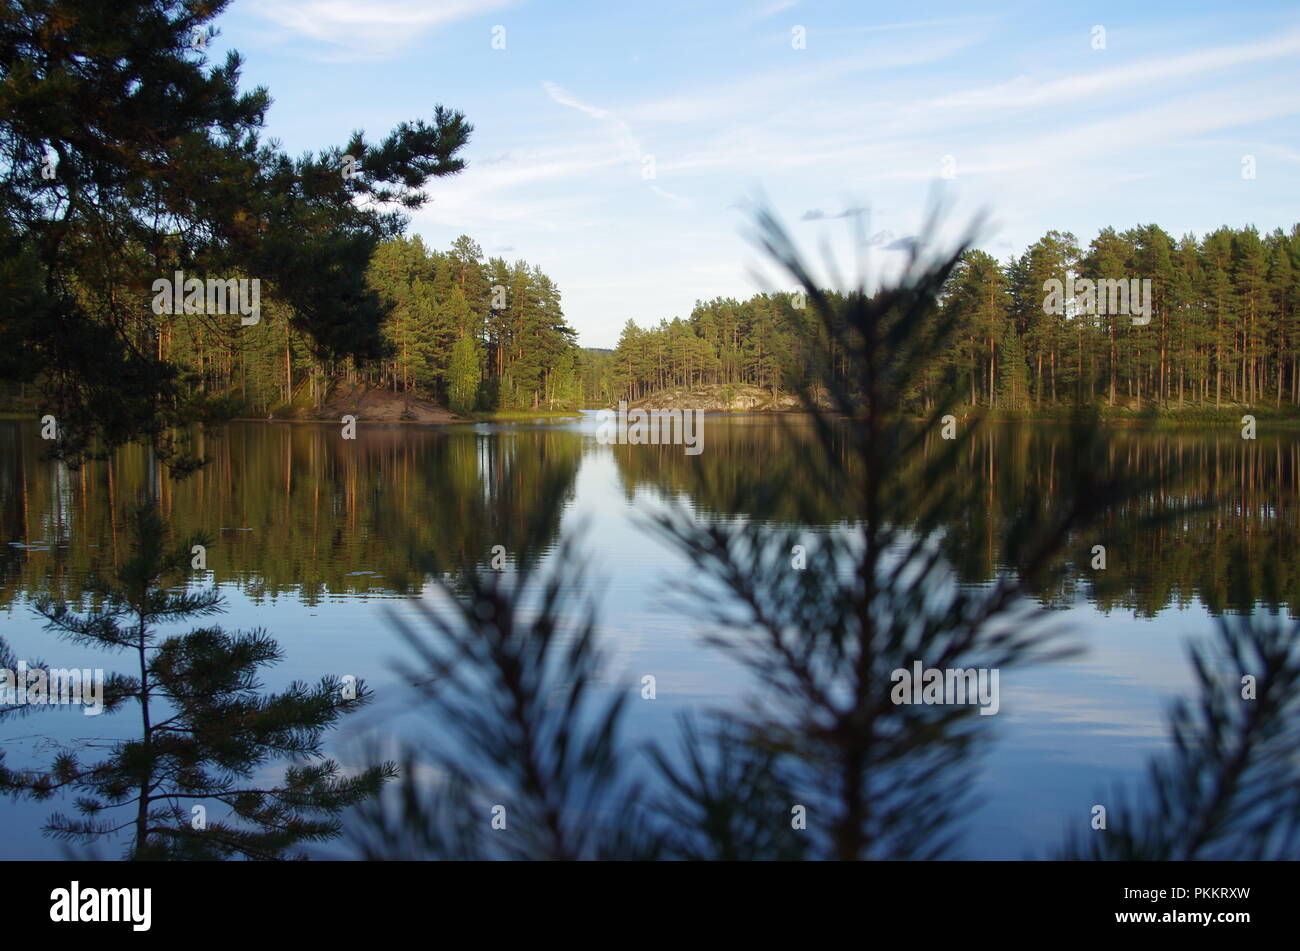 Beautiful lake scene on a sunny autumn afternoon in Sweden - Stock Image